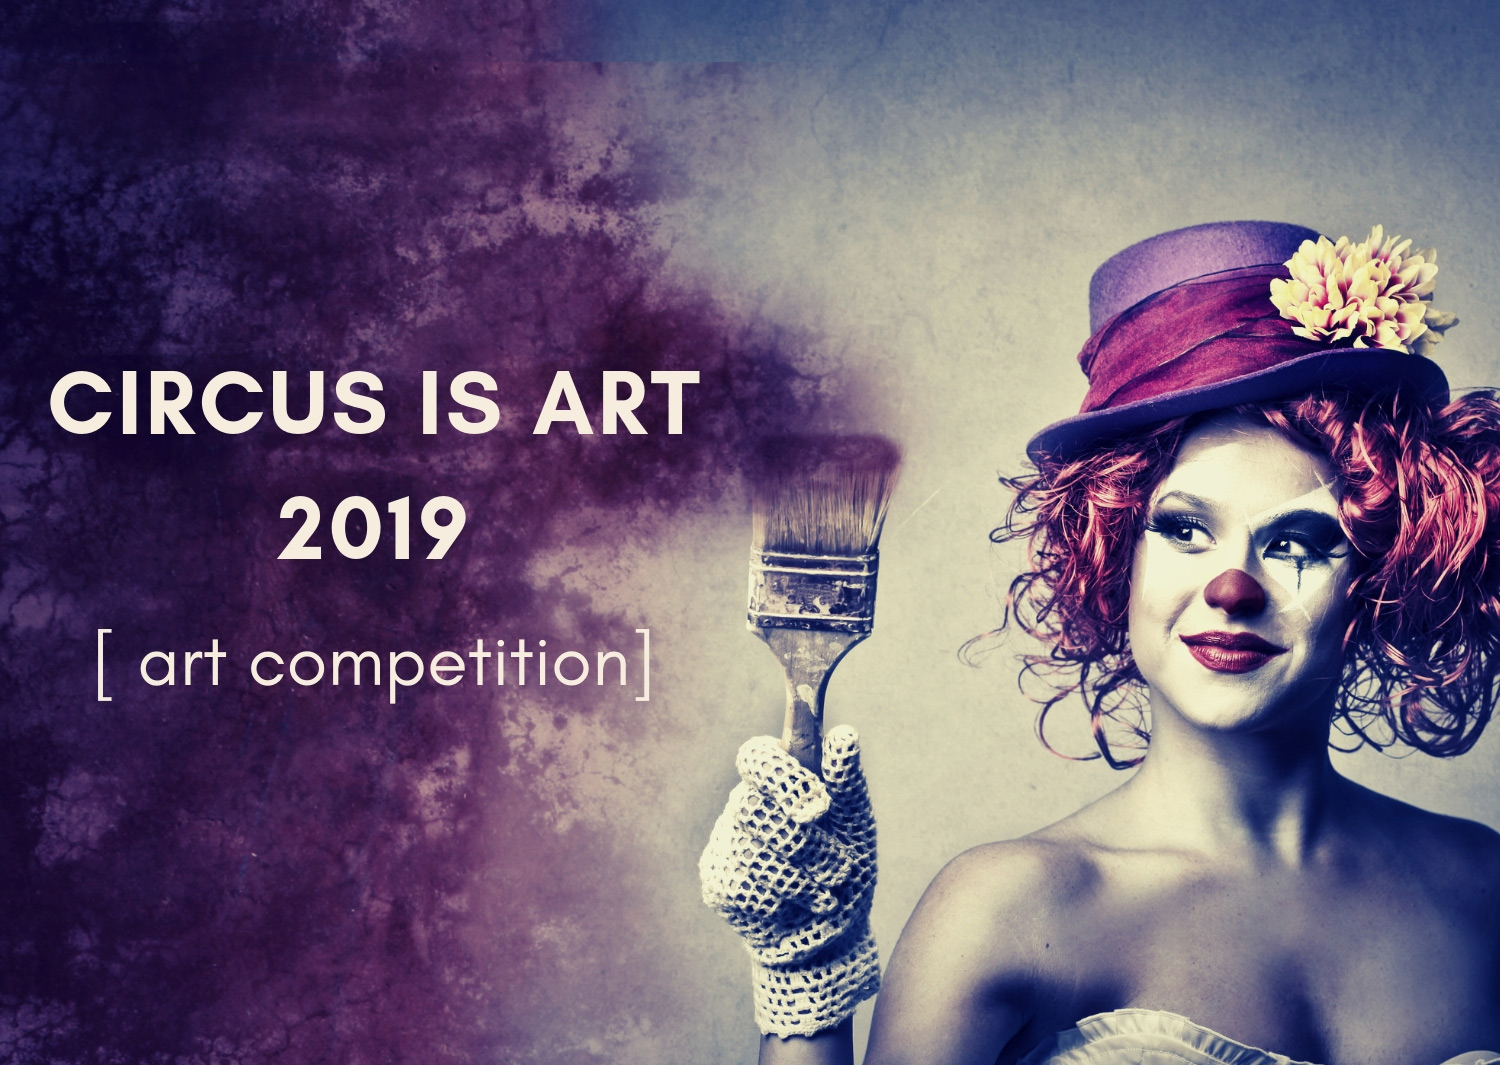 circus-arts-byron-bay-primary-school-art-competition-circus-is-art-2019